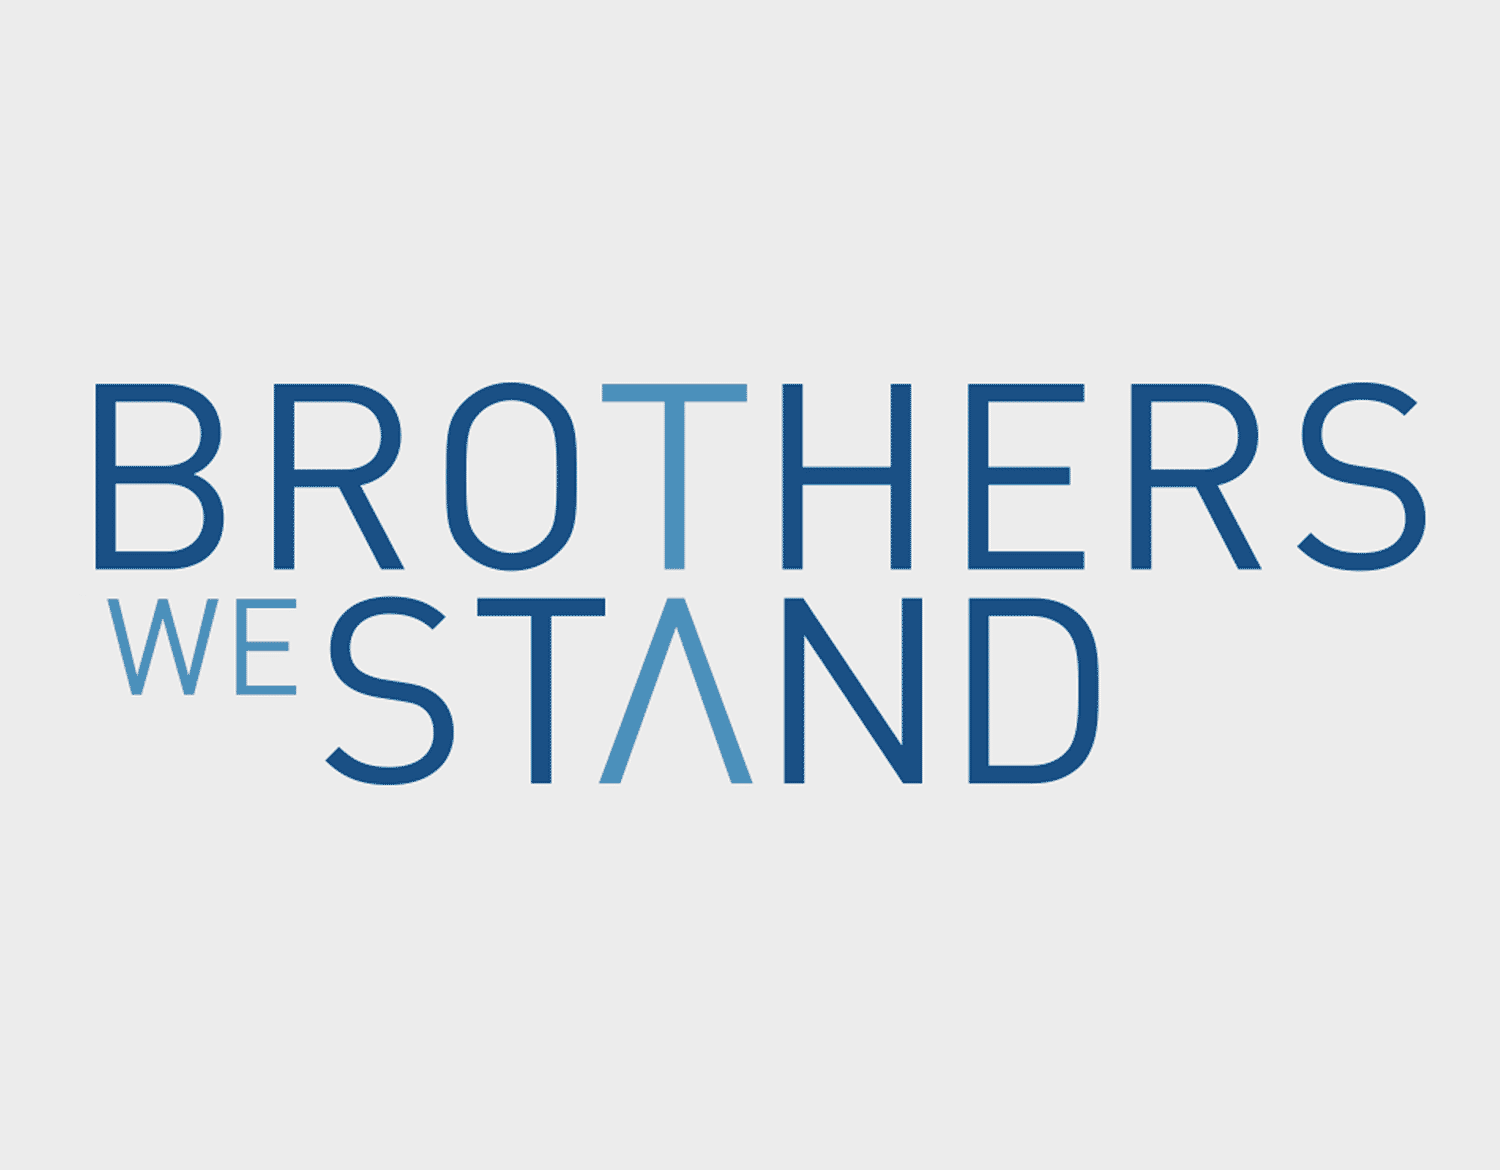 Brothers We Stand - Who made your shirt?